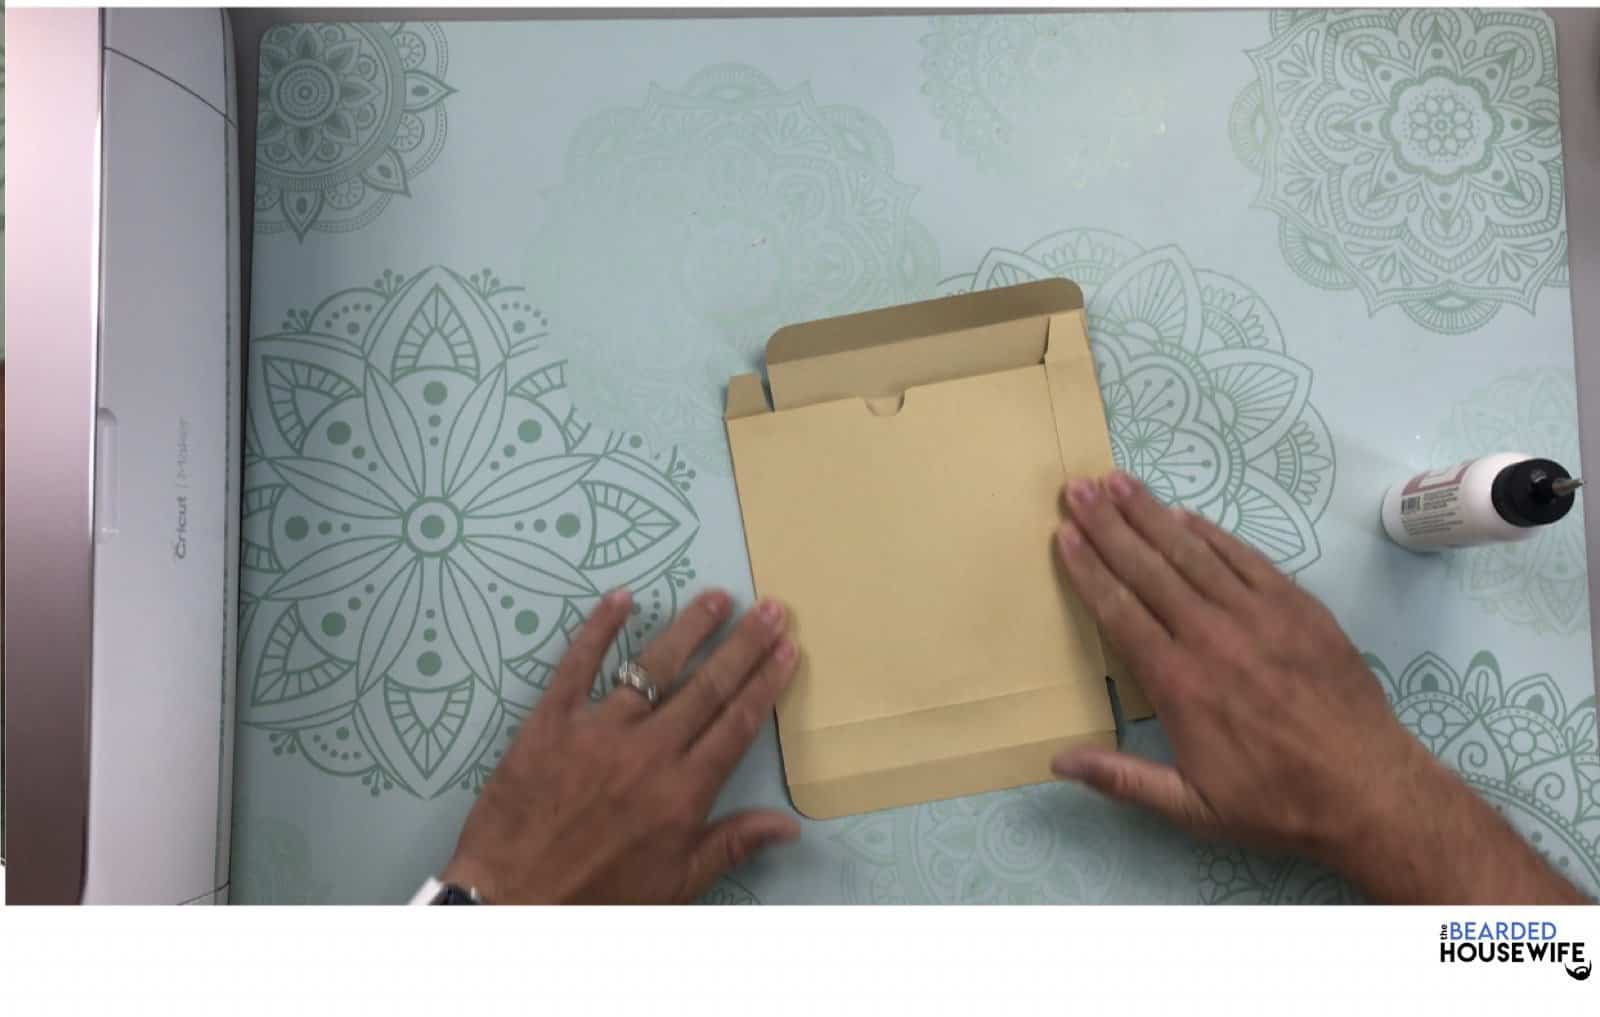 fold the box both ways to make sure it lines up properly